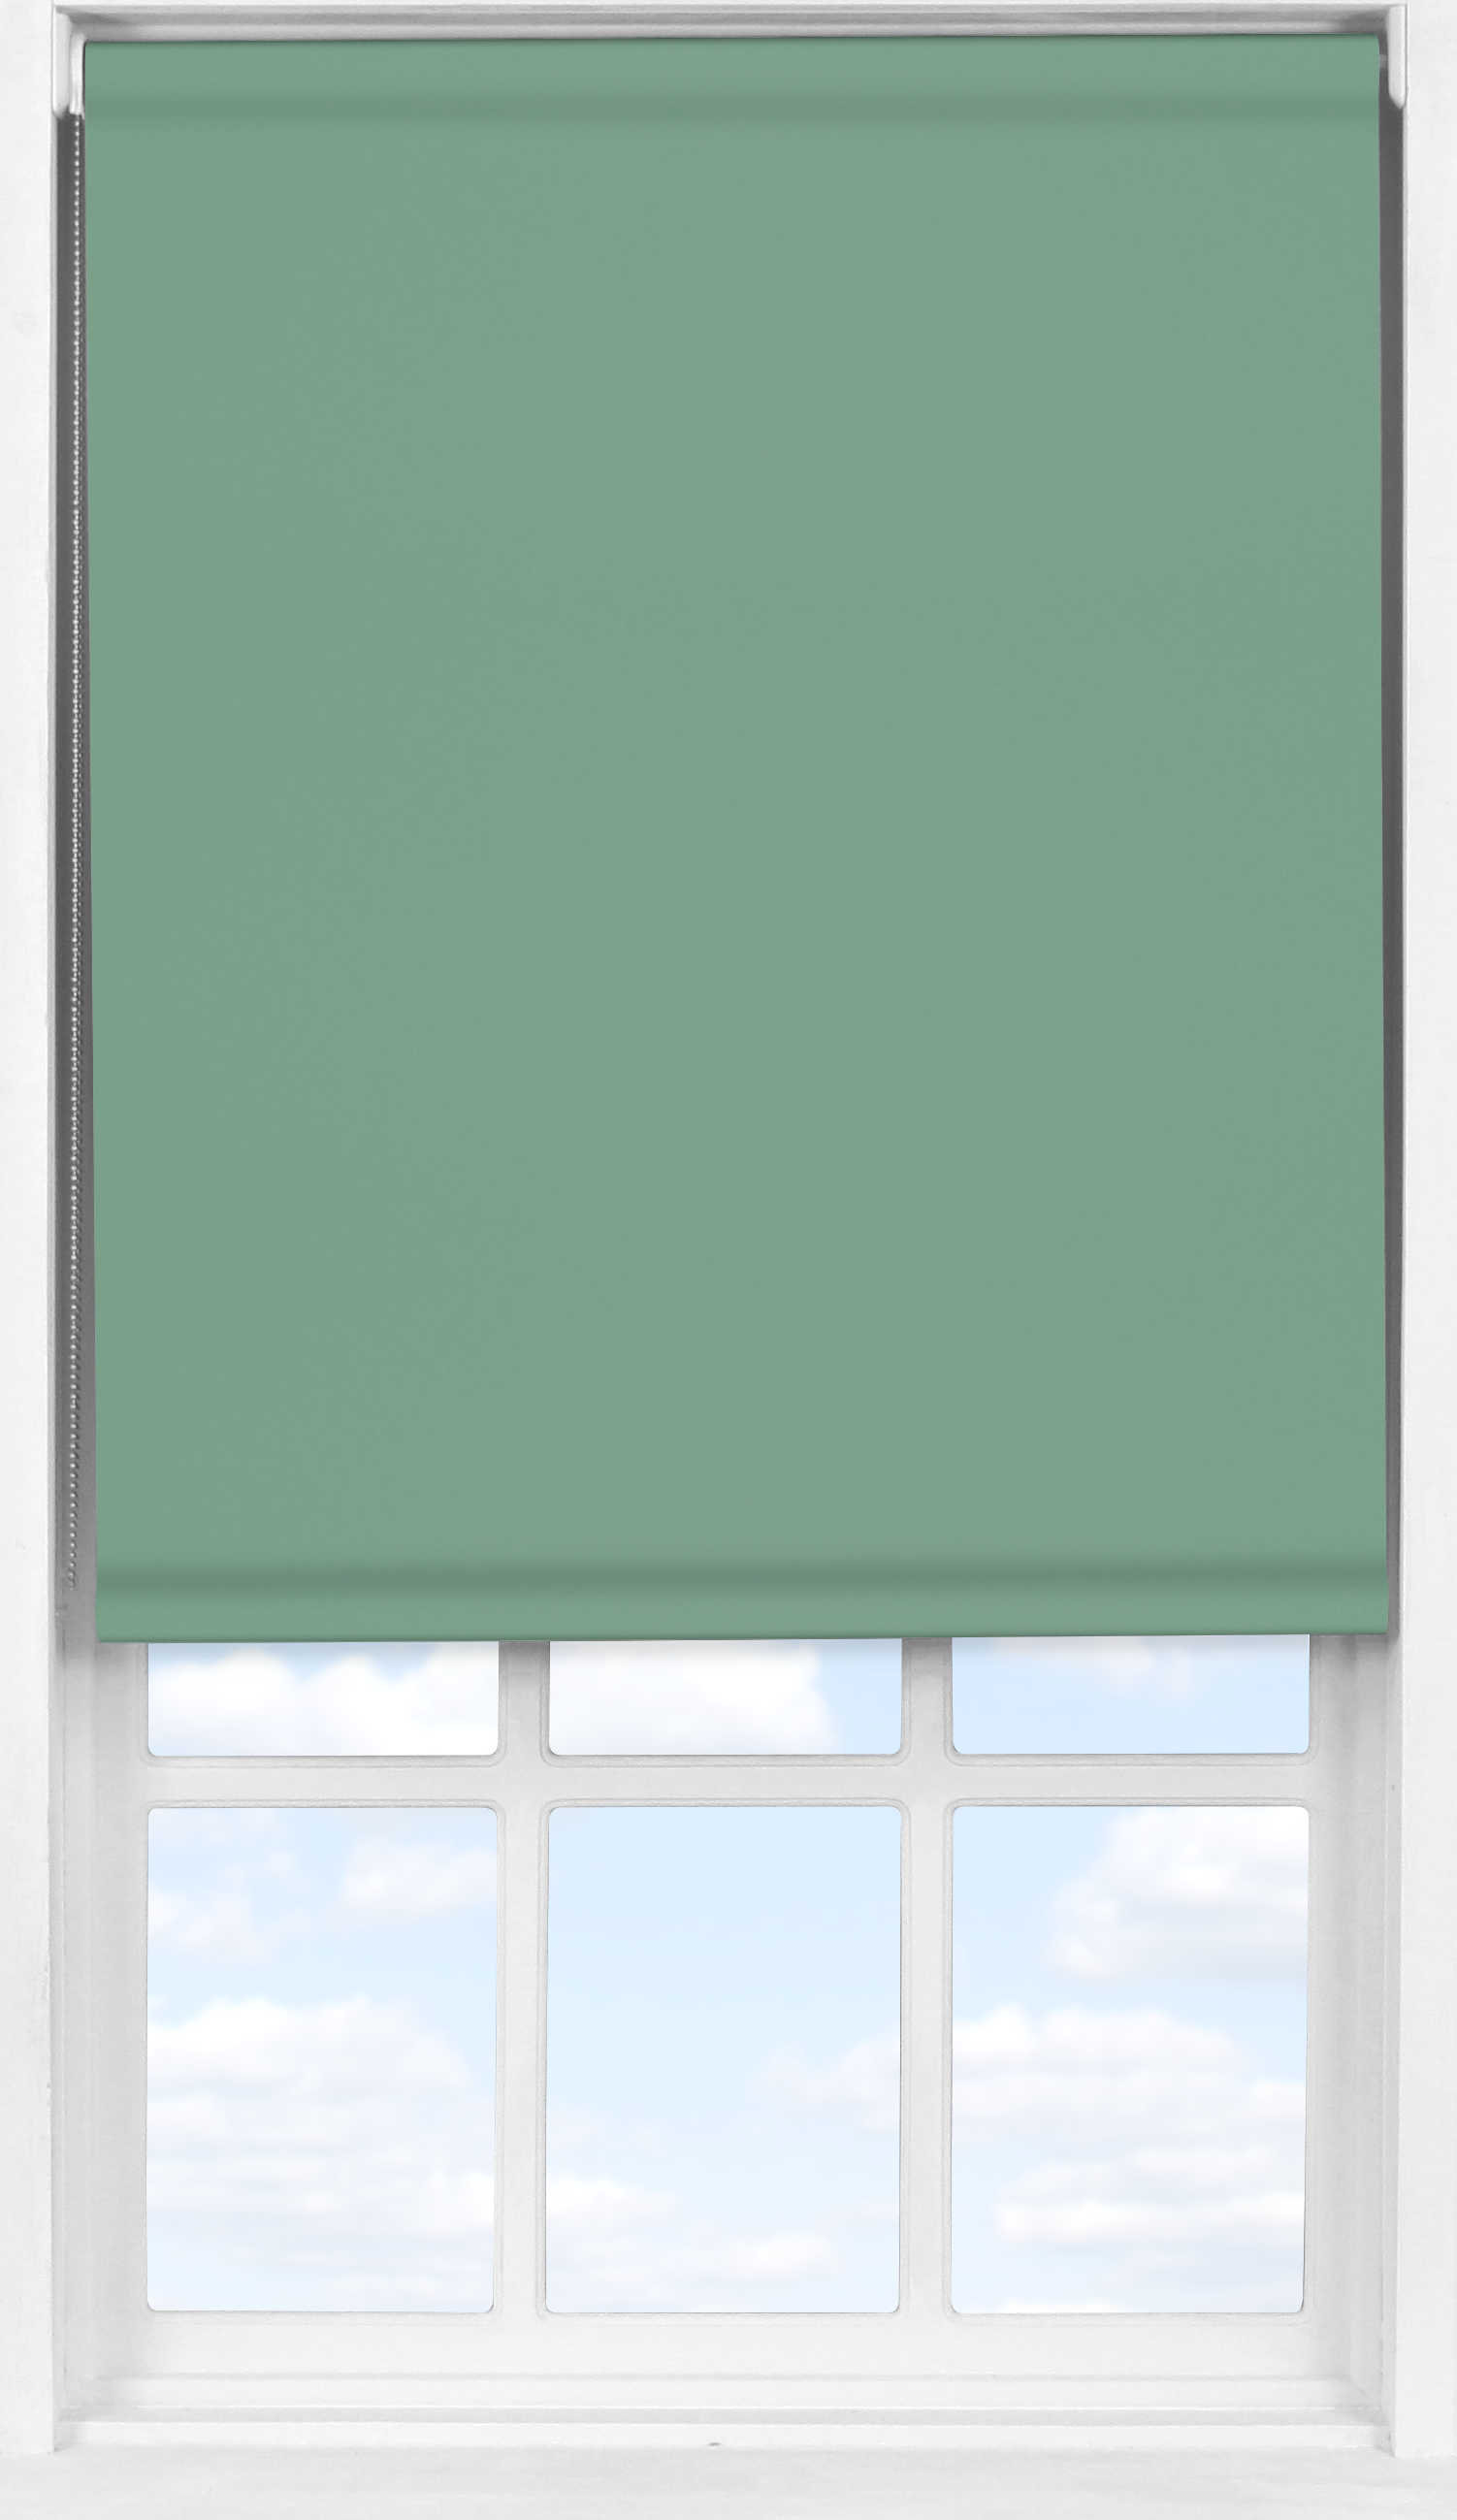 Easifit Roller Blind in Crockery Teal Blackout